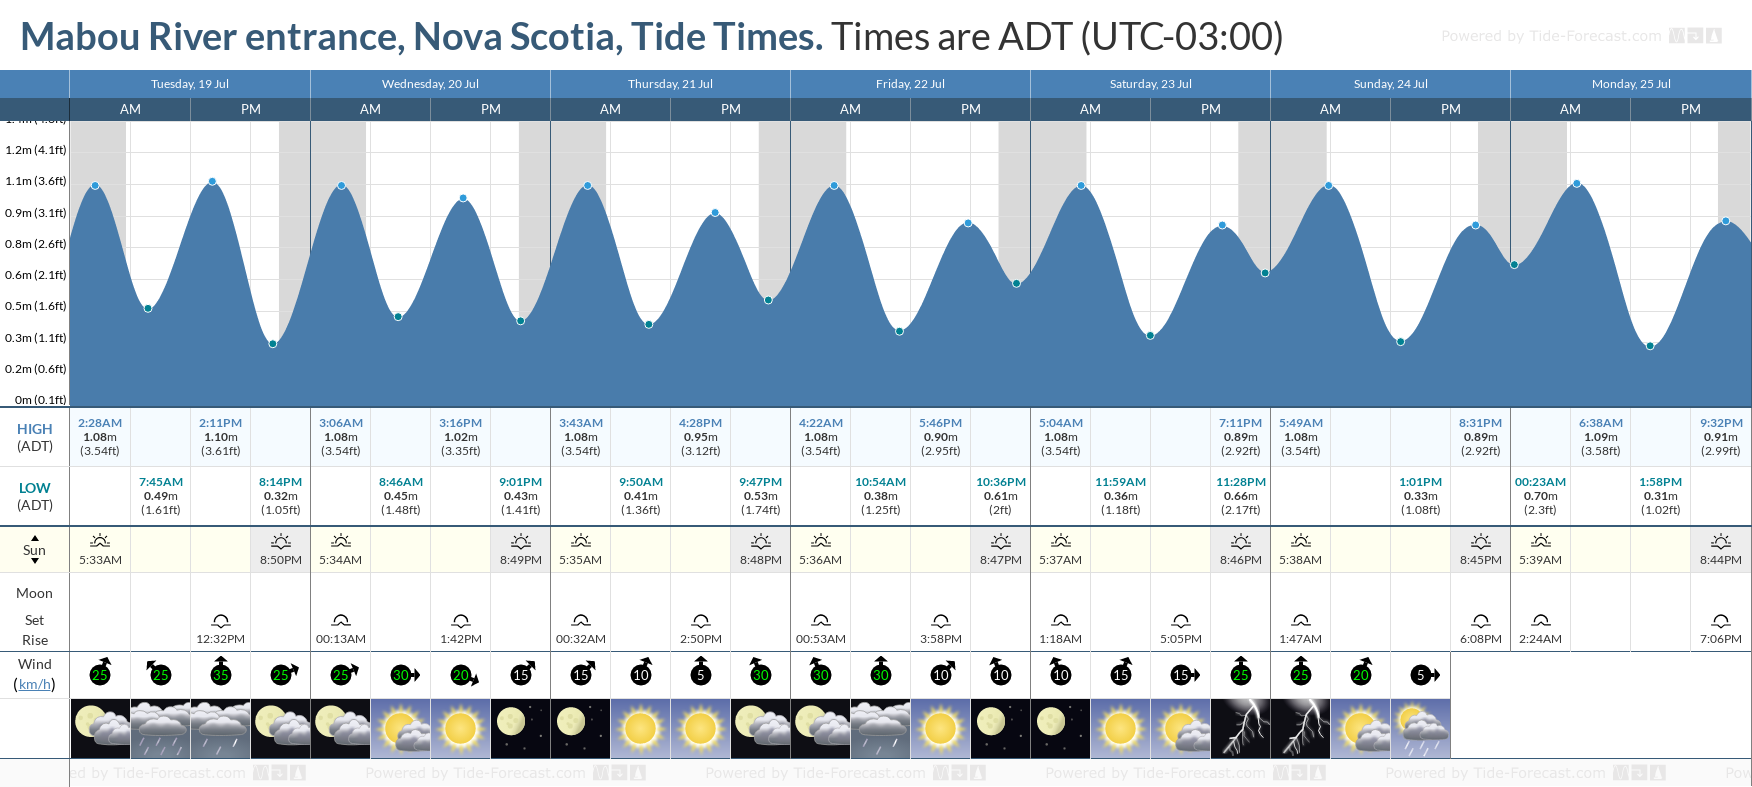 Mabou River entrance, Nova Scotia Tide Chart including high and low tide tide times for the next 7 days